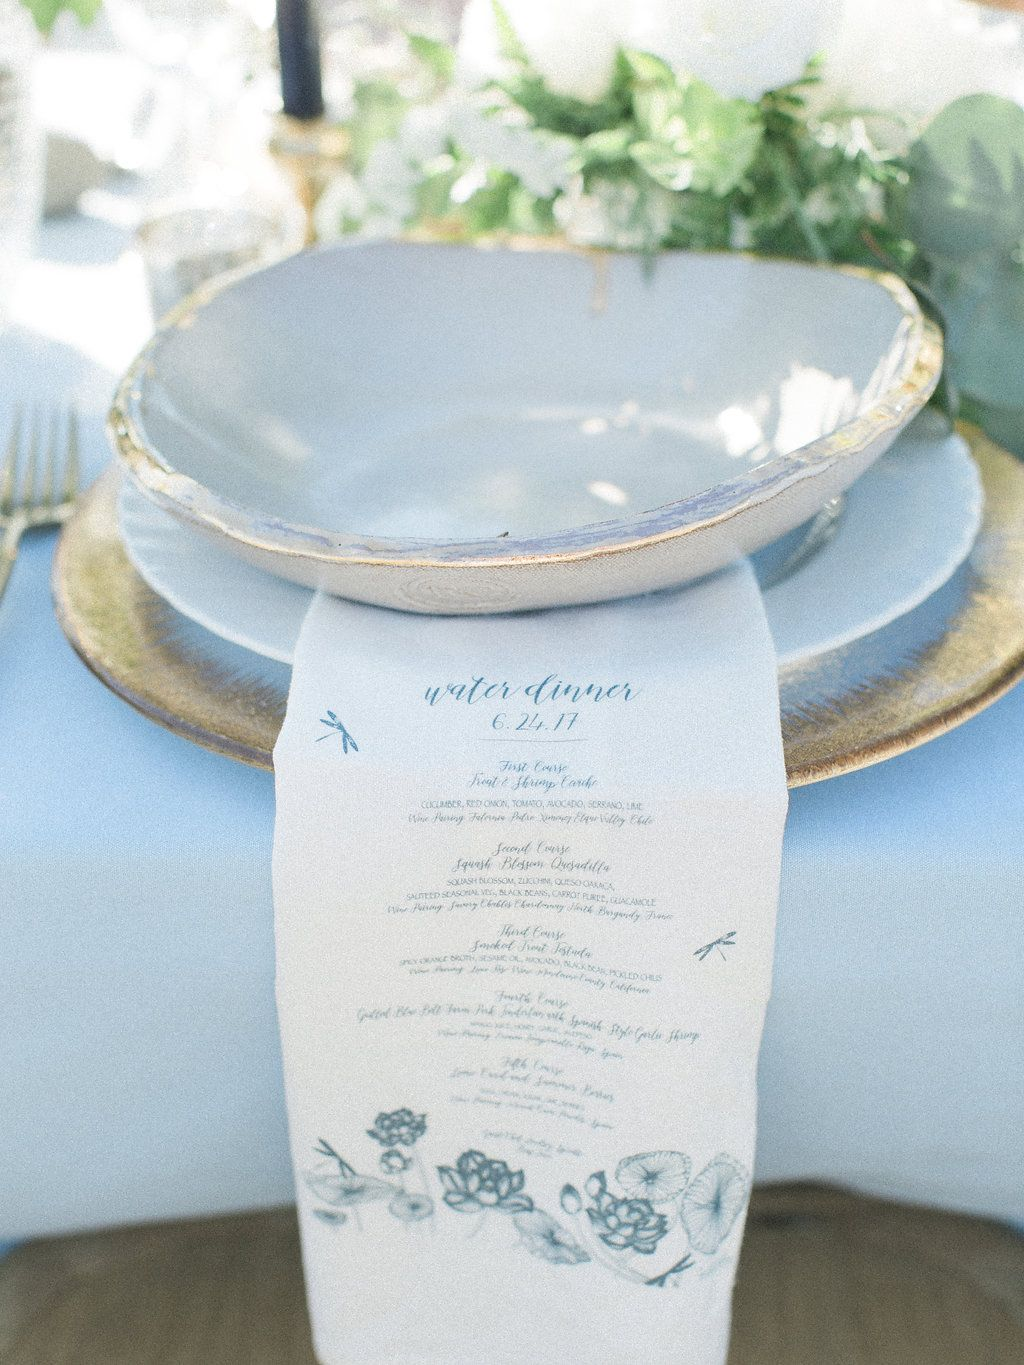 Pin By Emilee Sherertz On All Things Wedding Party Rentals